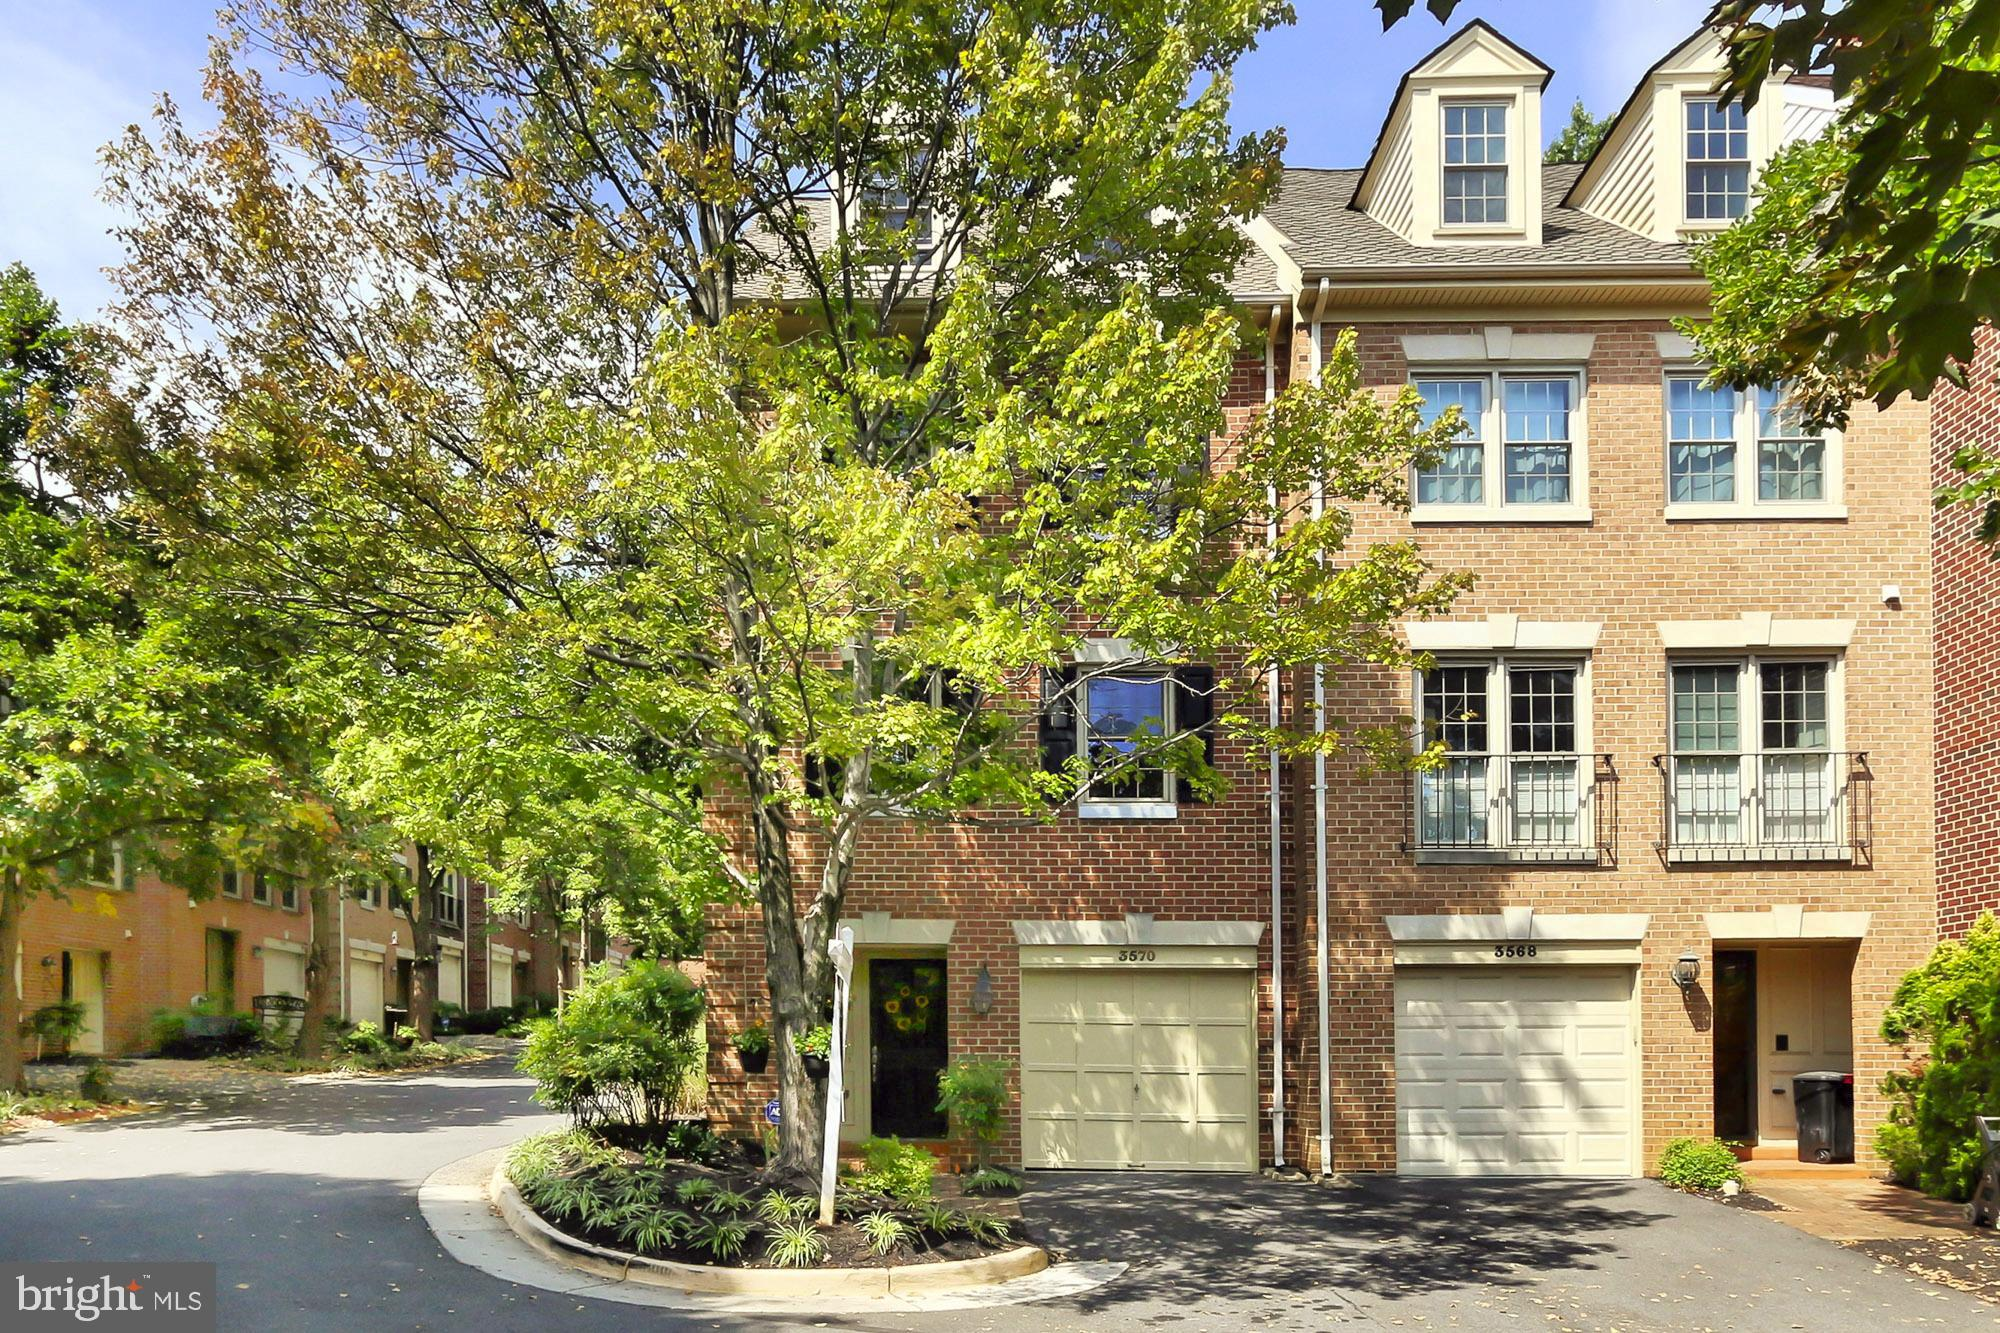 Nestled in a small enclave of luxury townhomes in the Skyline Village neighborhood, this 3 bedroom, 2 full and 2 half bath end-unit townhome is infused with countless designer details and is updated with the modern luxuries that home buyers seek. An all brick exterior, 1-car garage, courtyard-style fenced-in yard, and vibrant landscaping are only some of the fine features that make this home so exquisite. Decorative moldings, modern lighting, fresh professional paint, extensive built-in shelving, finished lower level, and updated kitchen and baths reveal expert craftsmanship, while the abundance of windows bathe every room with natural light.New luxury hardwood-style vinyl flooring and decorative moldings in the foyer welcome you home. Ascend the stairs to the spacious sunken living room featuring rich hardwoods, custom crown molding, and a sliding glass door opening to a freshly painted deck with descending steps to a fenced-in yard~seamlessly blending indoor and outdoor entertaining or simple relaxation. Back inside, the dining room is highlighted by chair rail and a frosted-glass chandelier adding a distinctly tailored feel. The gourmet kitchen will please the modern chef with striking granite countertops, traditional and glass-front maple cabinetry, decorative backsplash, stone flooring, and stainless steel appliances including a gas range and built-in microwave. A center island with pendant lights provides bar-style seating and introduces the breakfast area that harbors ample table space and additional cabinetry, as a powder room updated to perfection complements the main level.Upstairs, the gracious owner~s suite boasts plush carpet, a wall of reach-in closets, and a luxurious en suite bath updated with dual vanities, sumptuous soaking tub, frameless shower, and spa-toned tile with decorative inlay. Down the hall, two bright and spacious bedrooms each enjoy easy access to the beautifully appointed hall bath. Fine craftsmanship continues in the lower level recr